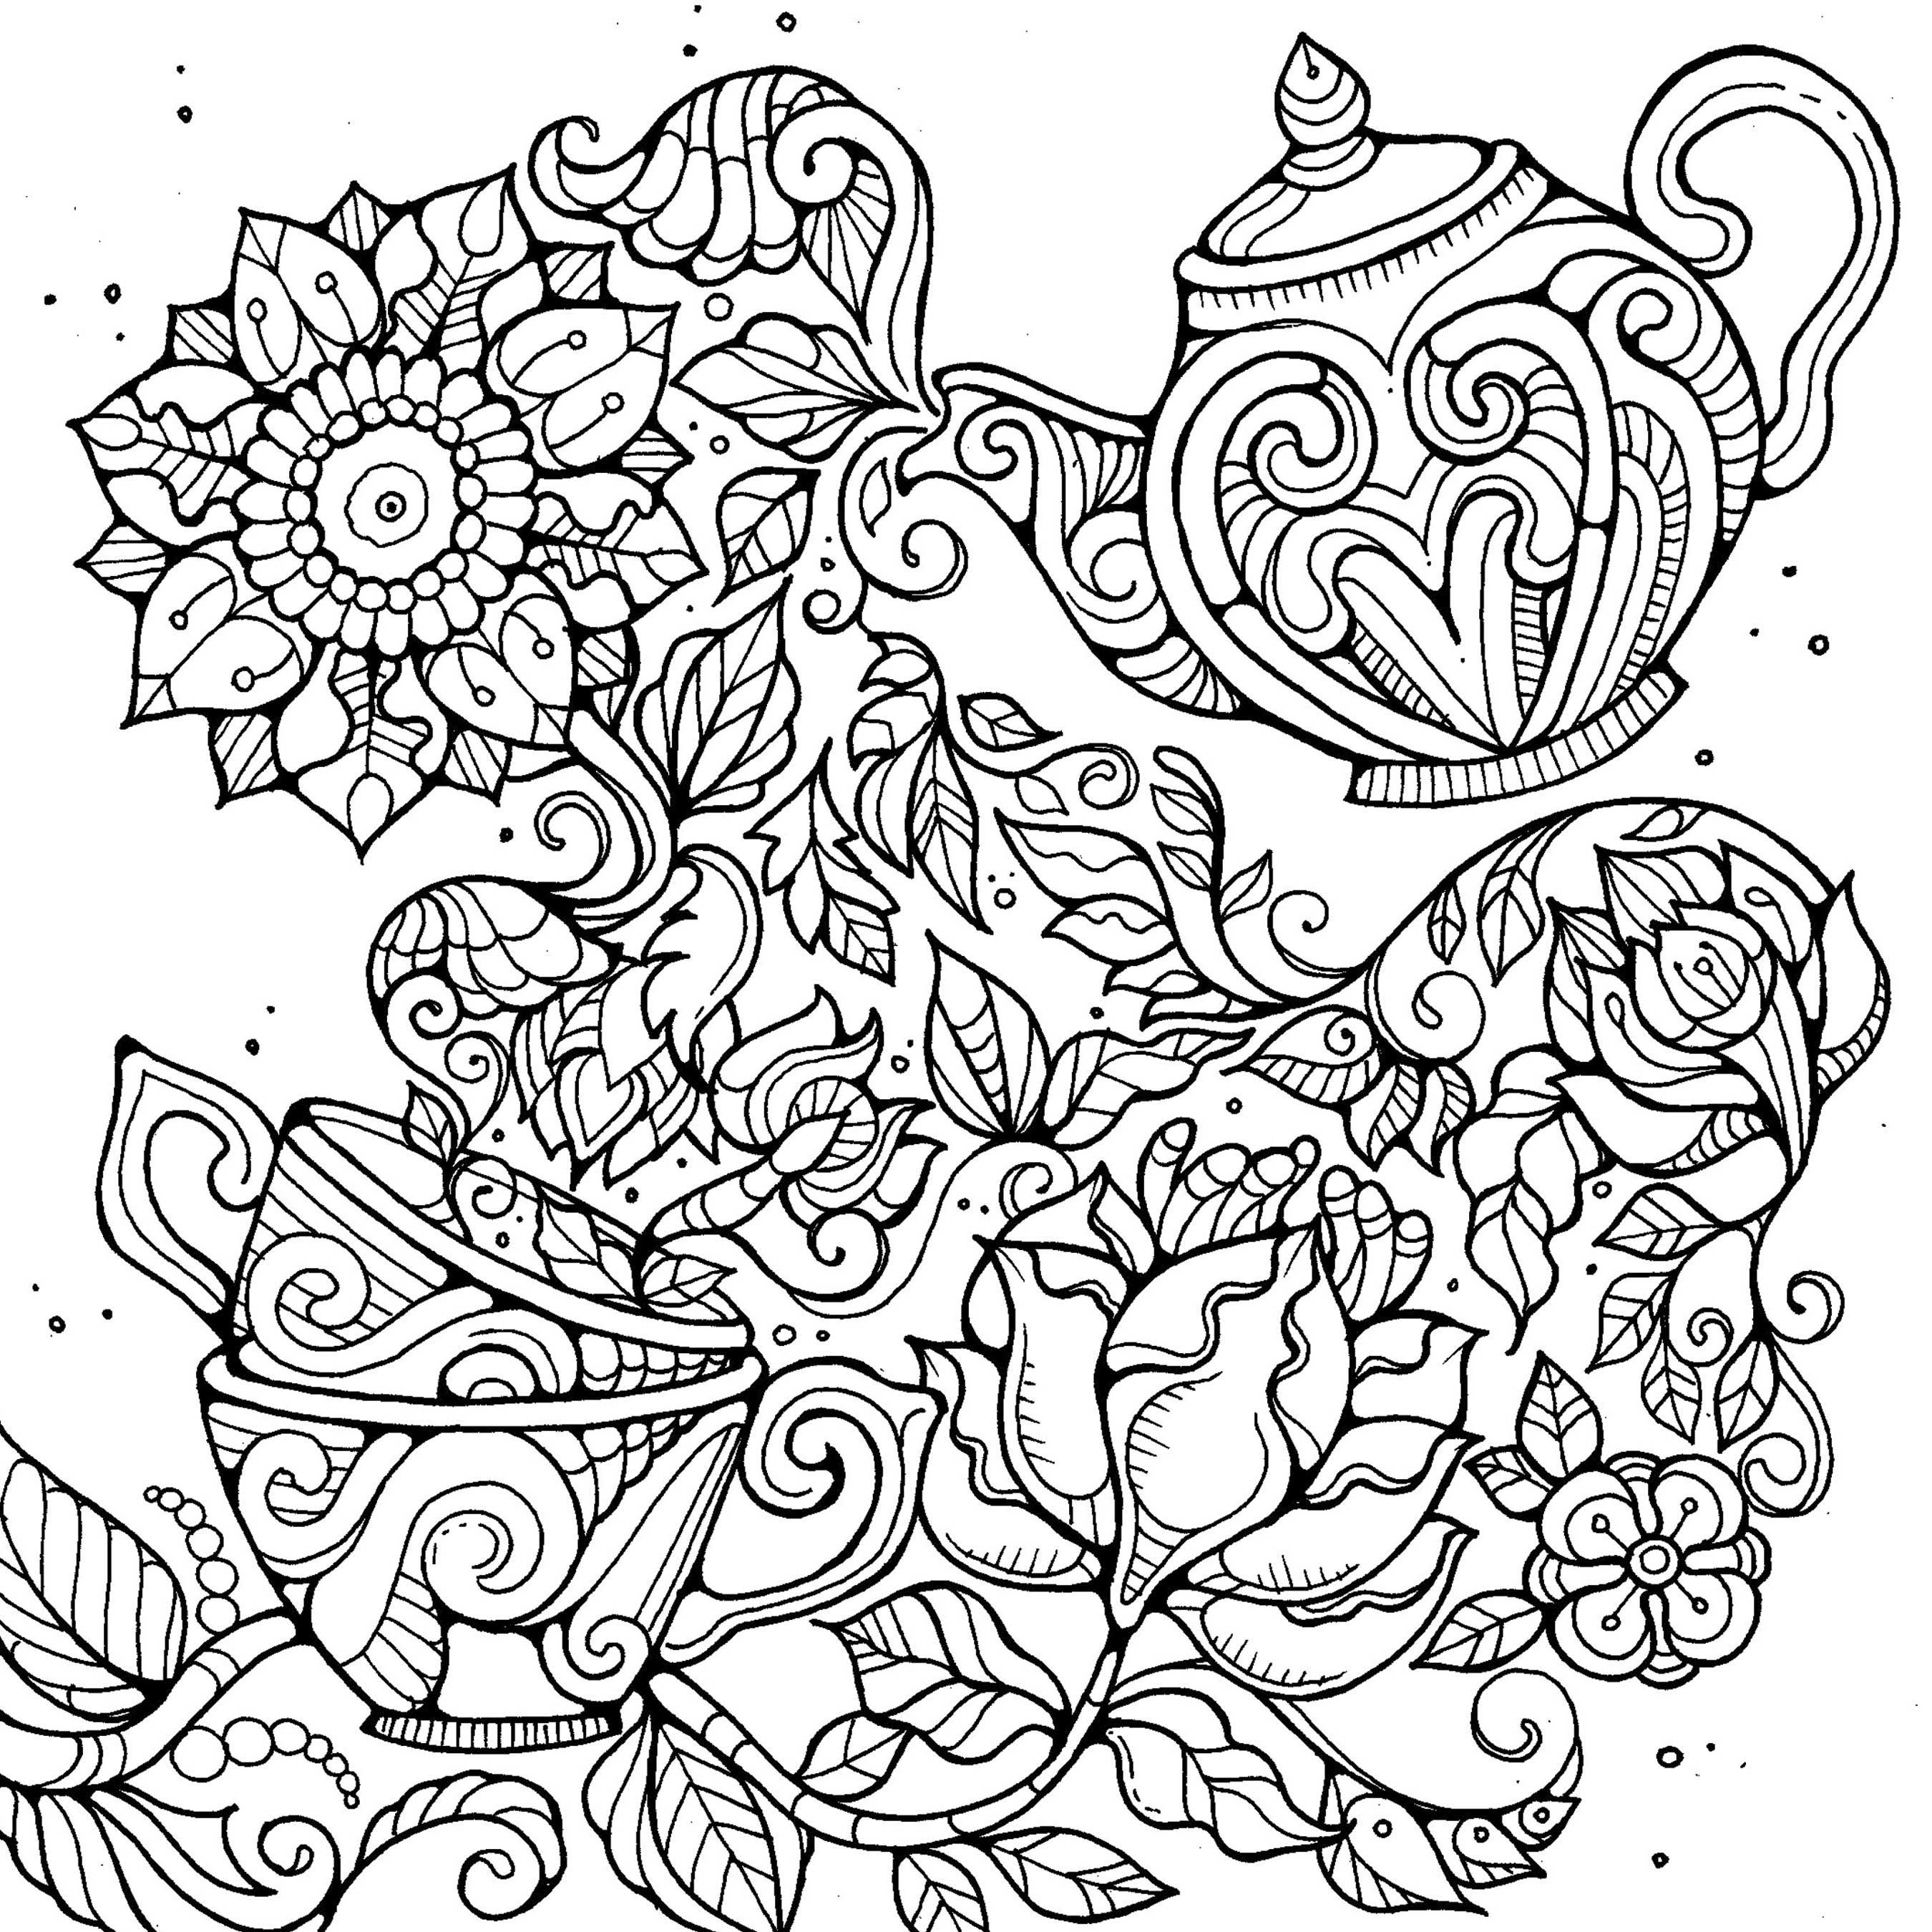 Colouring Pages by Dee Mans on Behance | imprimir food | Pinterest ...